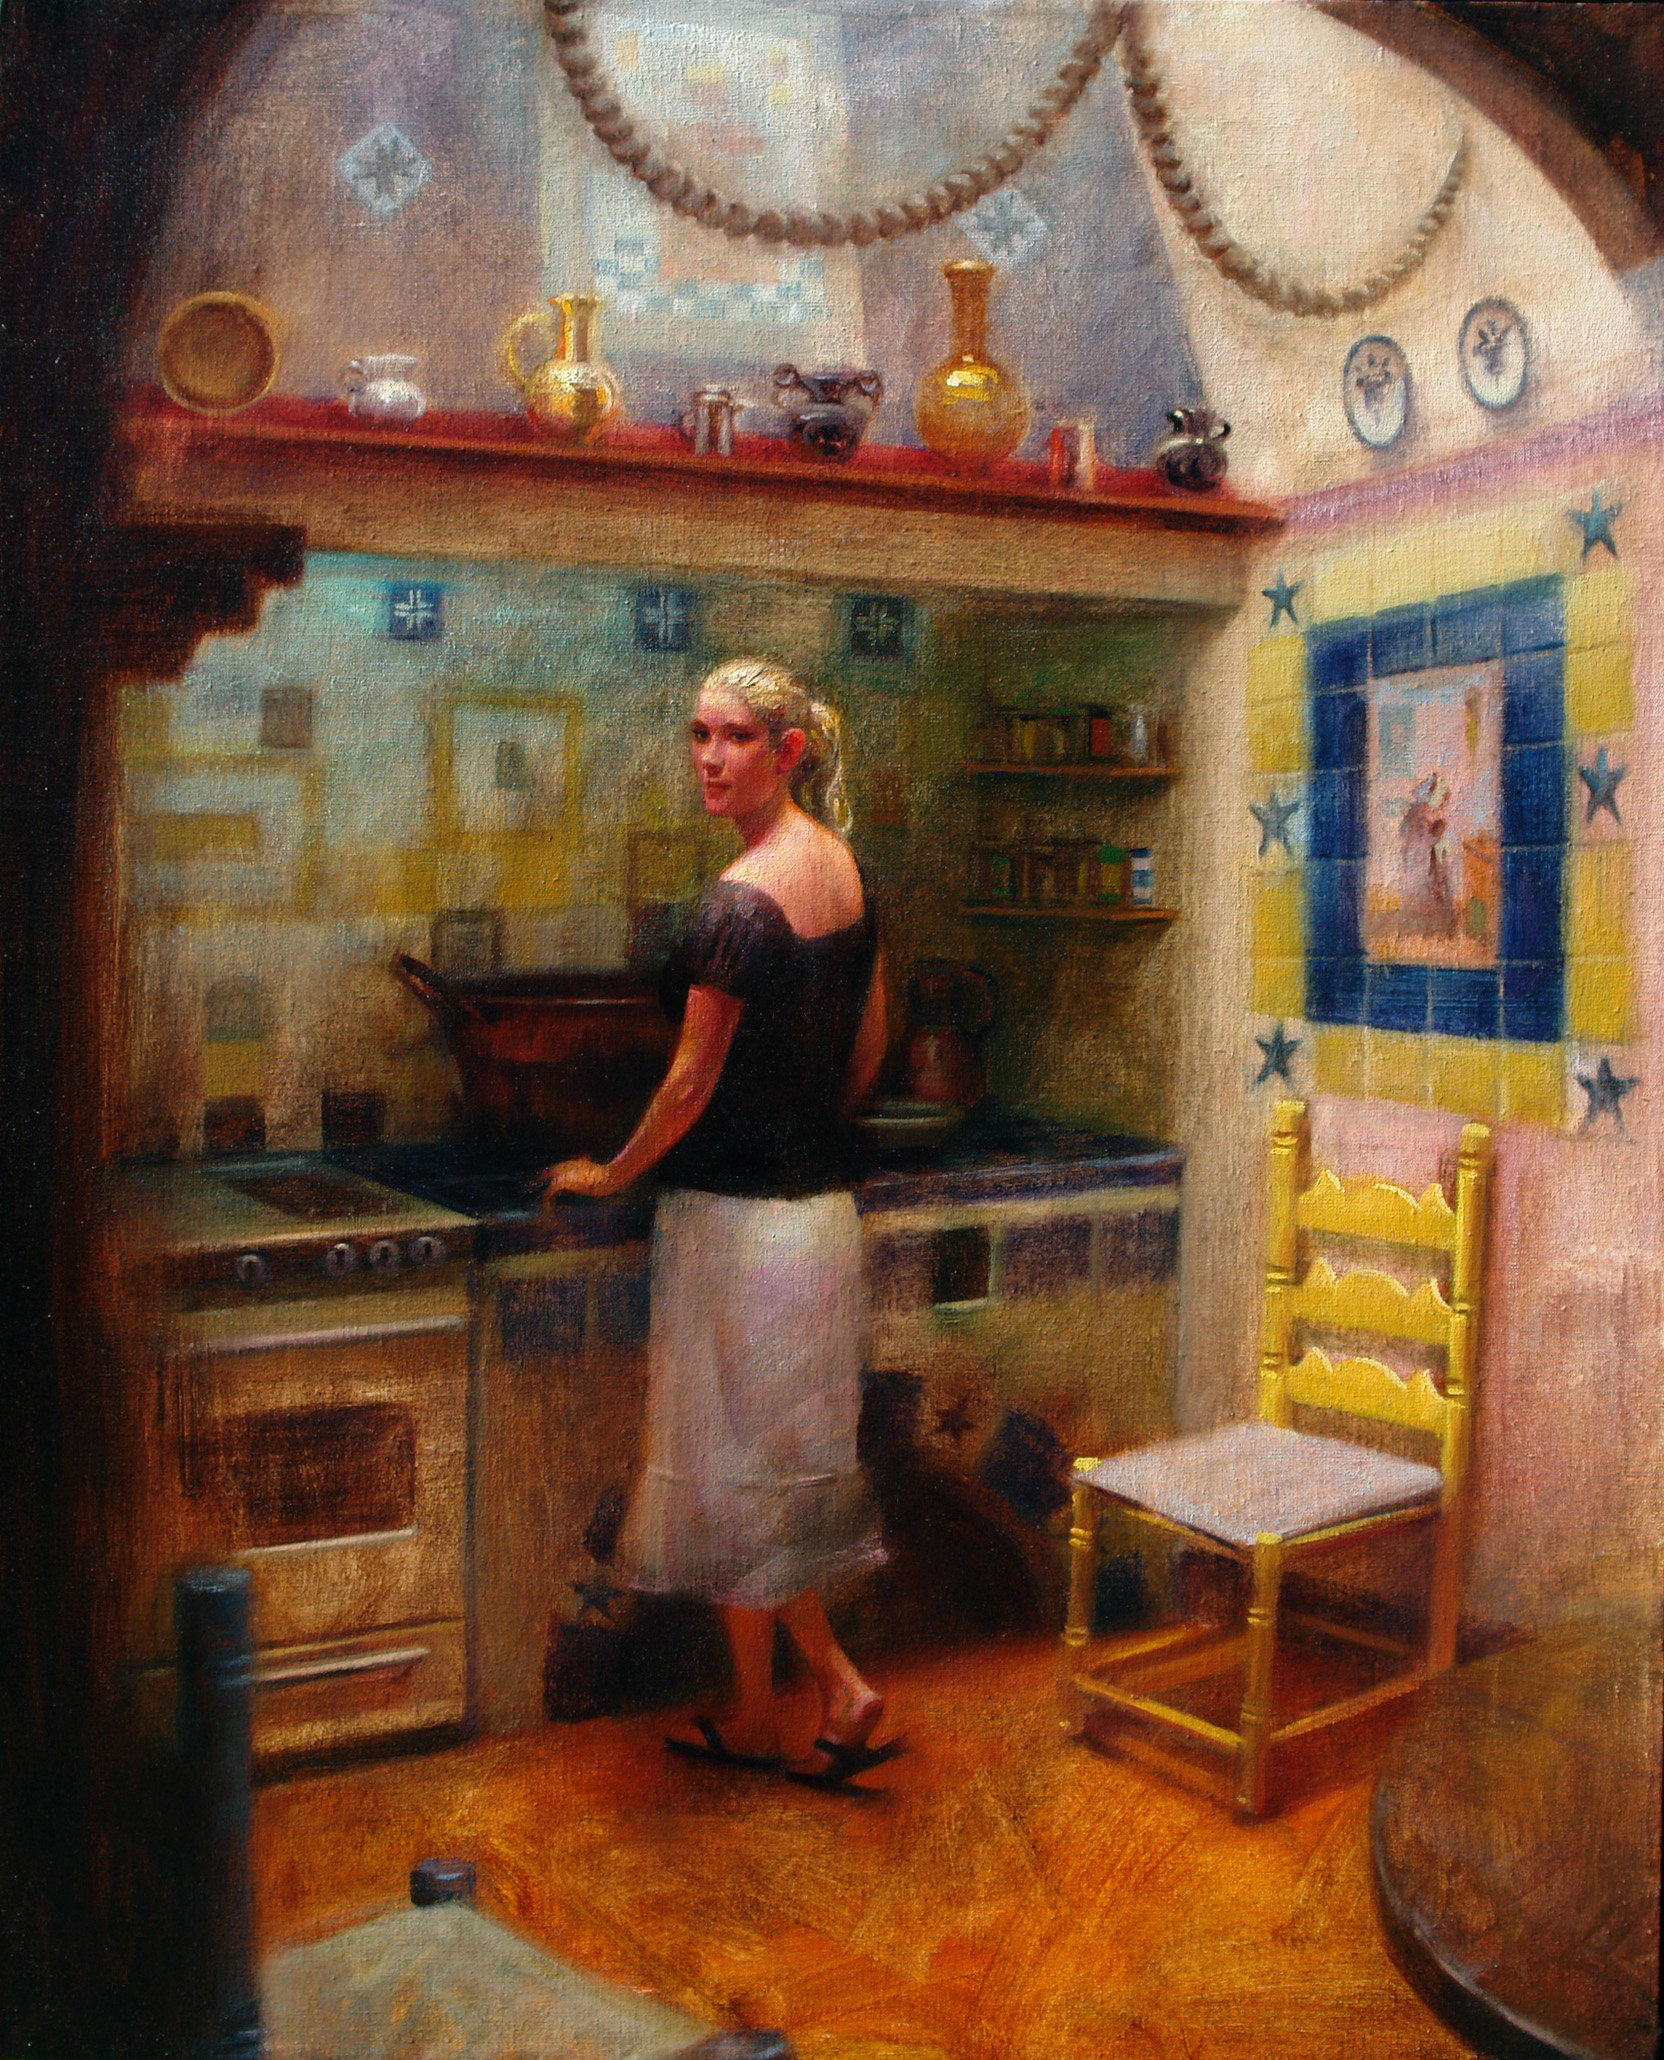 sergio-sanchez-the-spanish-kitchen-24x30-oil-on-linen